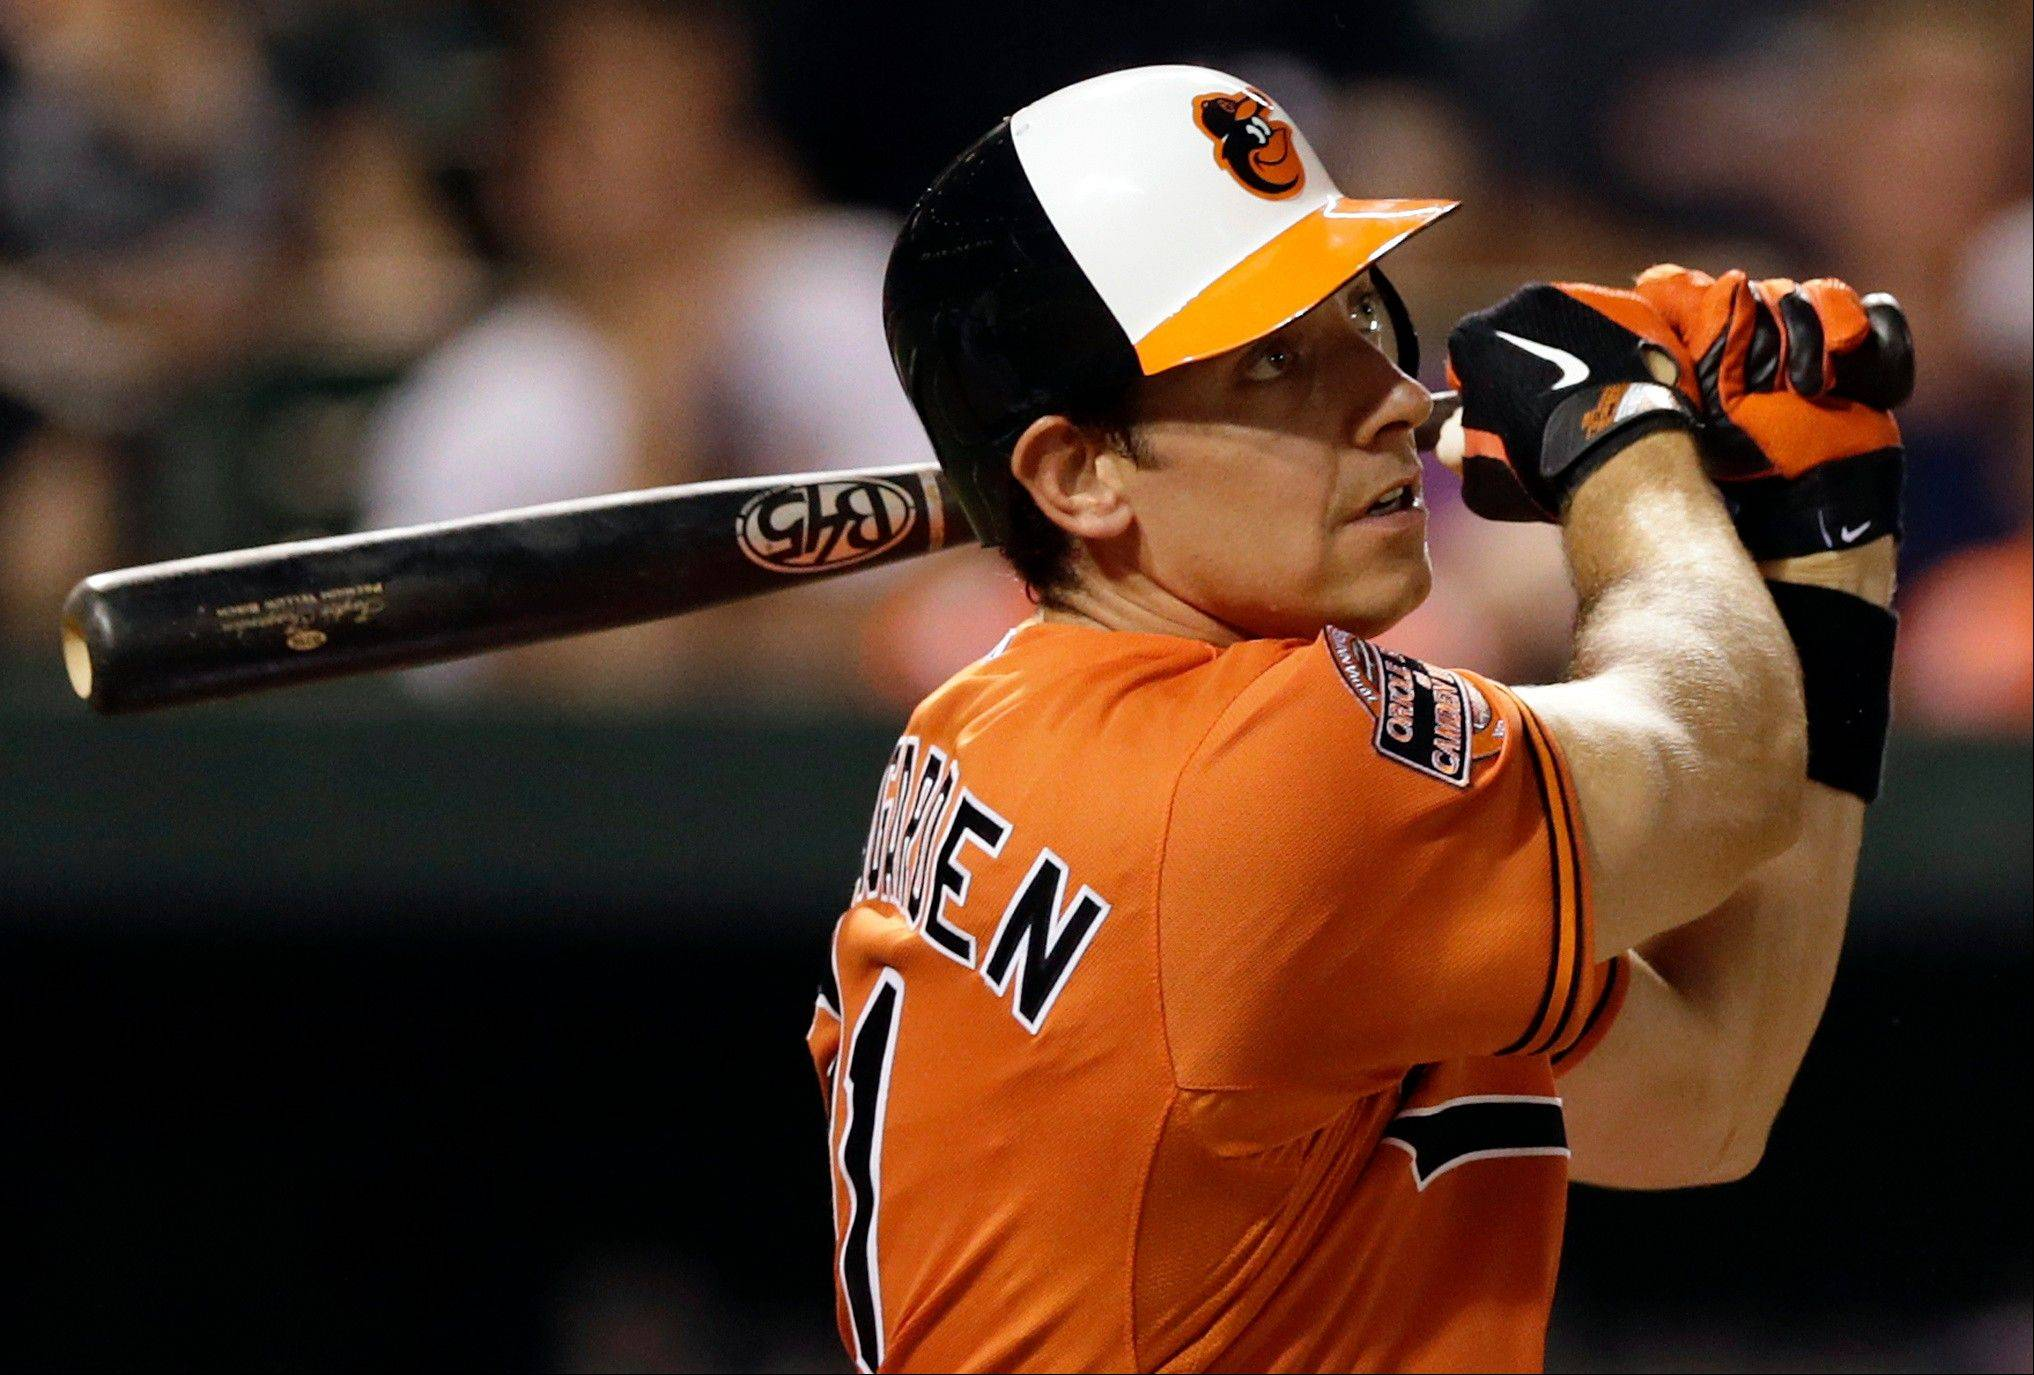 The Baltimore Orioles' Taylor Teagarden watches his 2-run, game-winning home run Saturday during the 13th inning against the Detroit Tigers in Baltimore. Baltimore won 8-6.